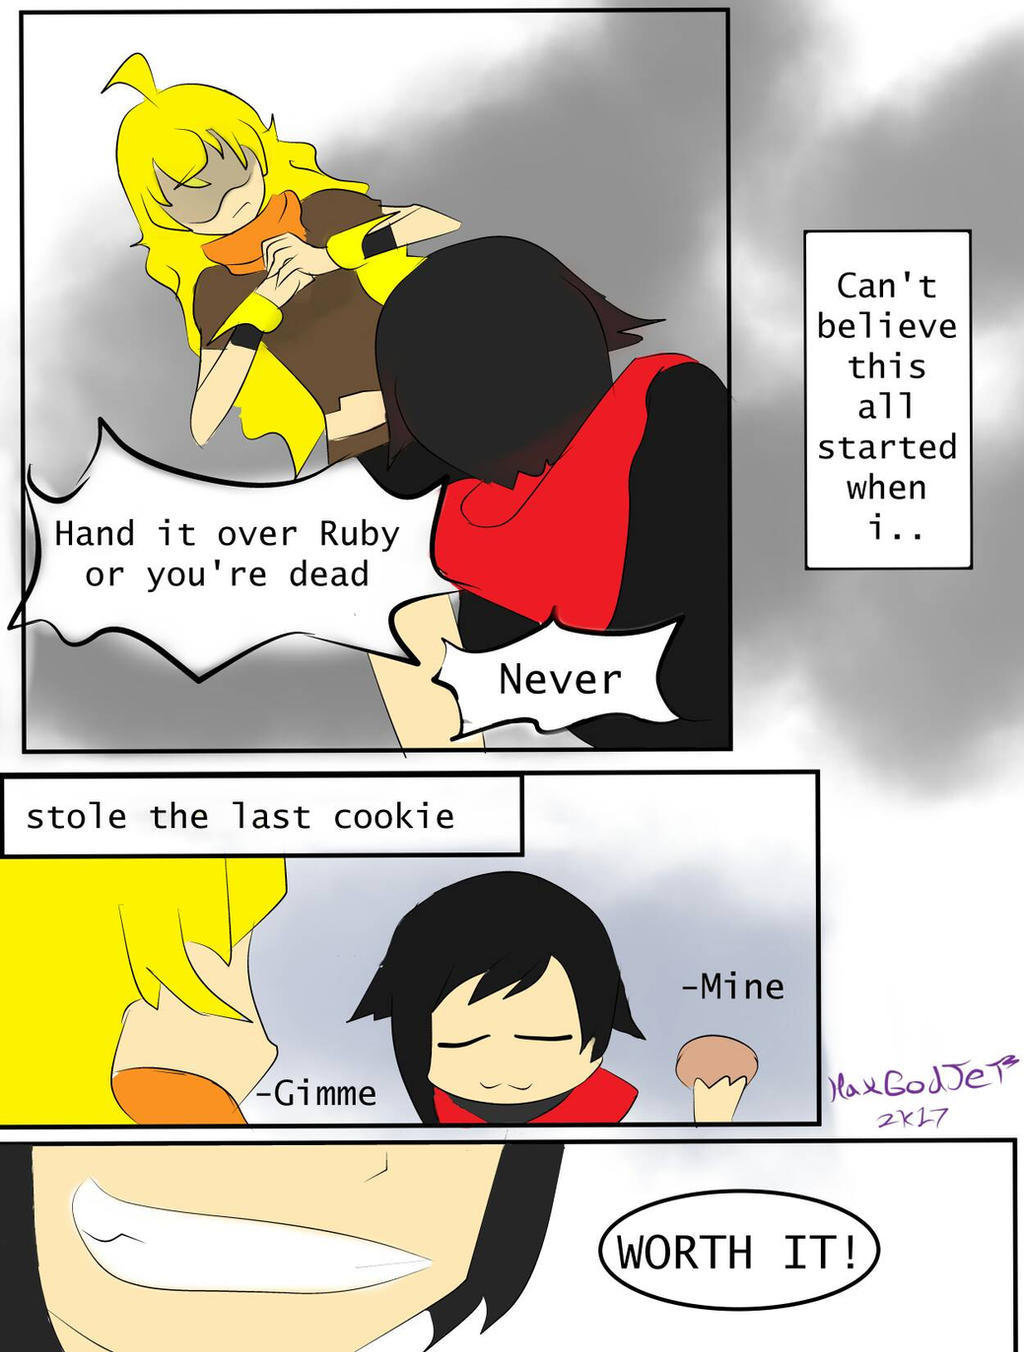 Last cookie request  by HaxGodJet